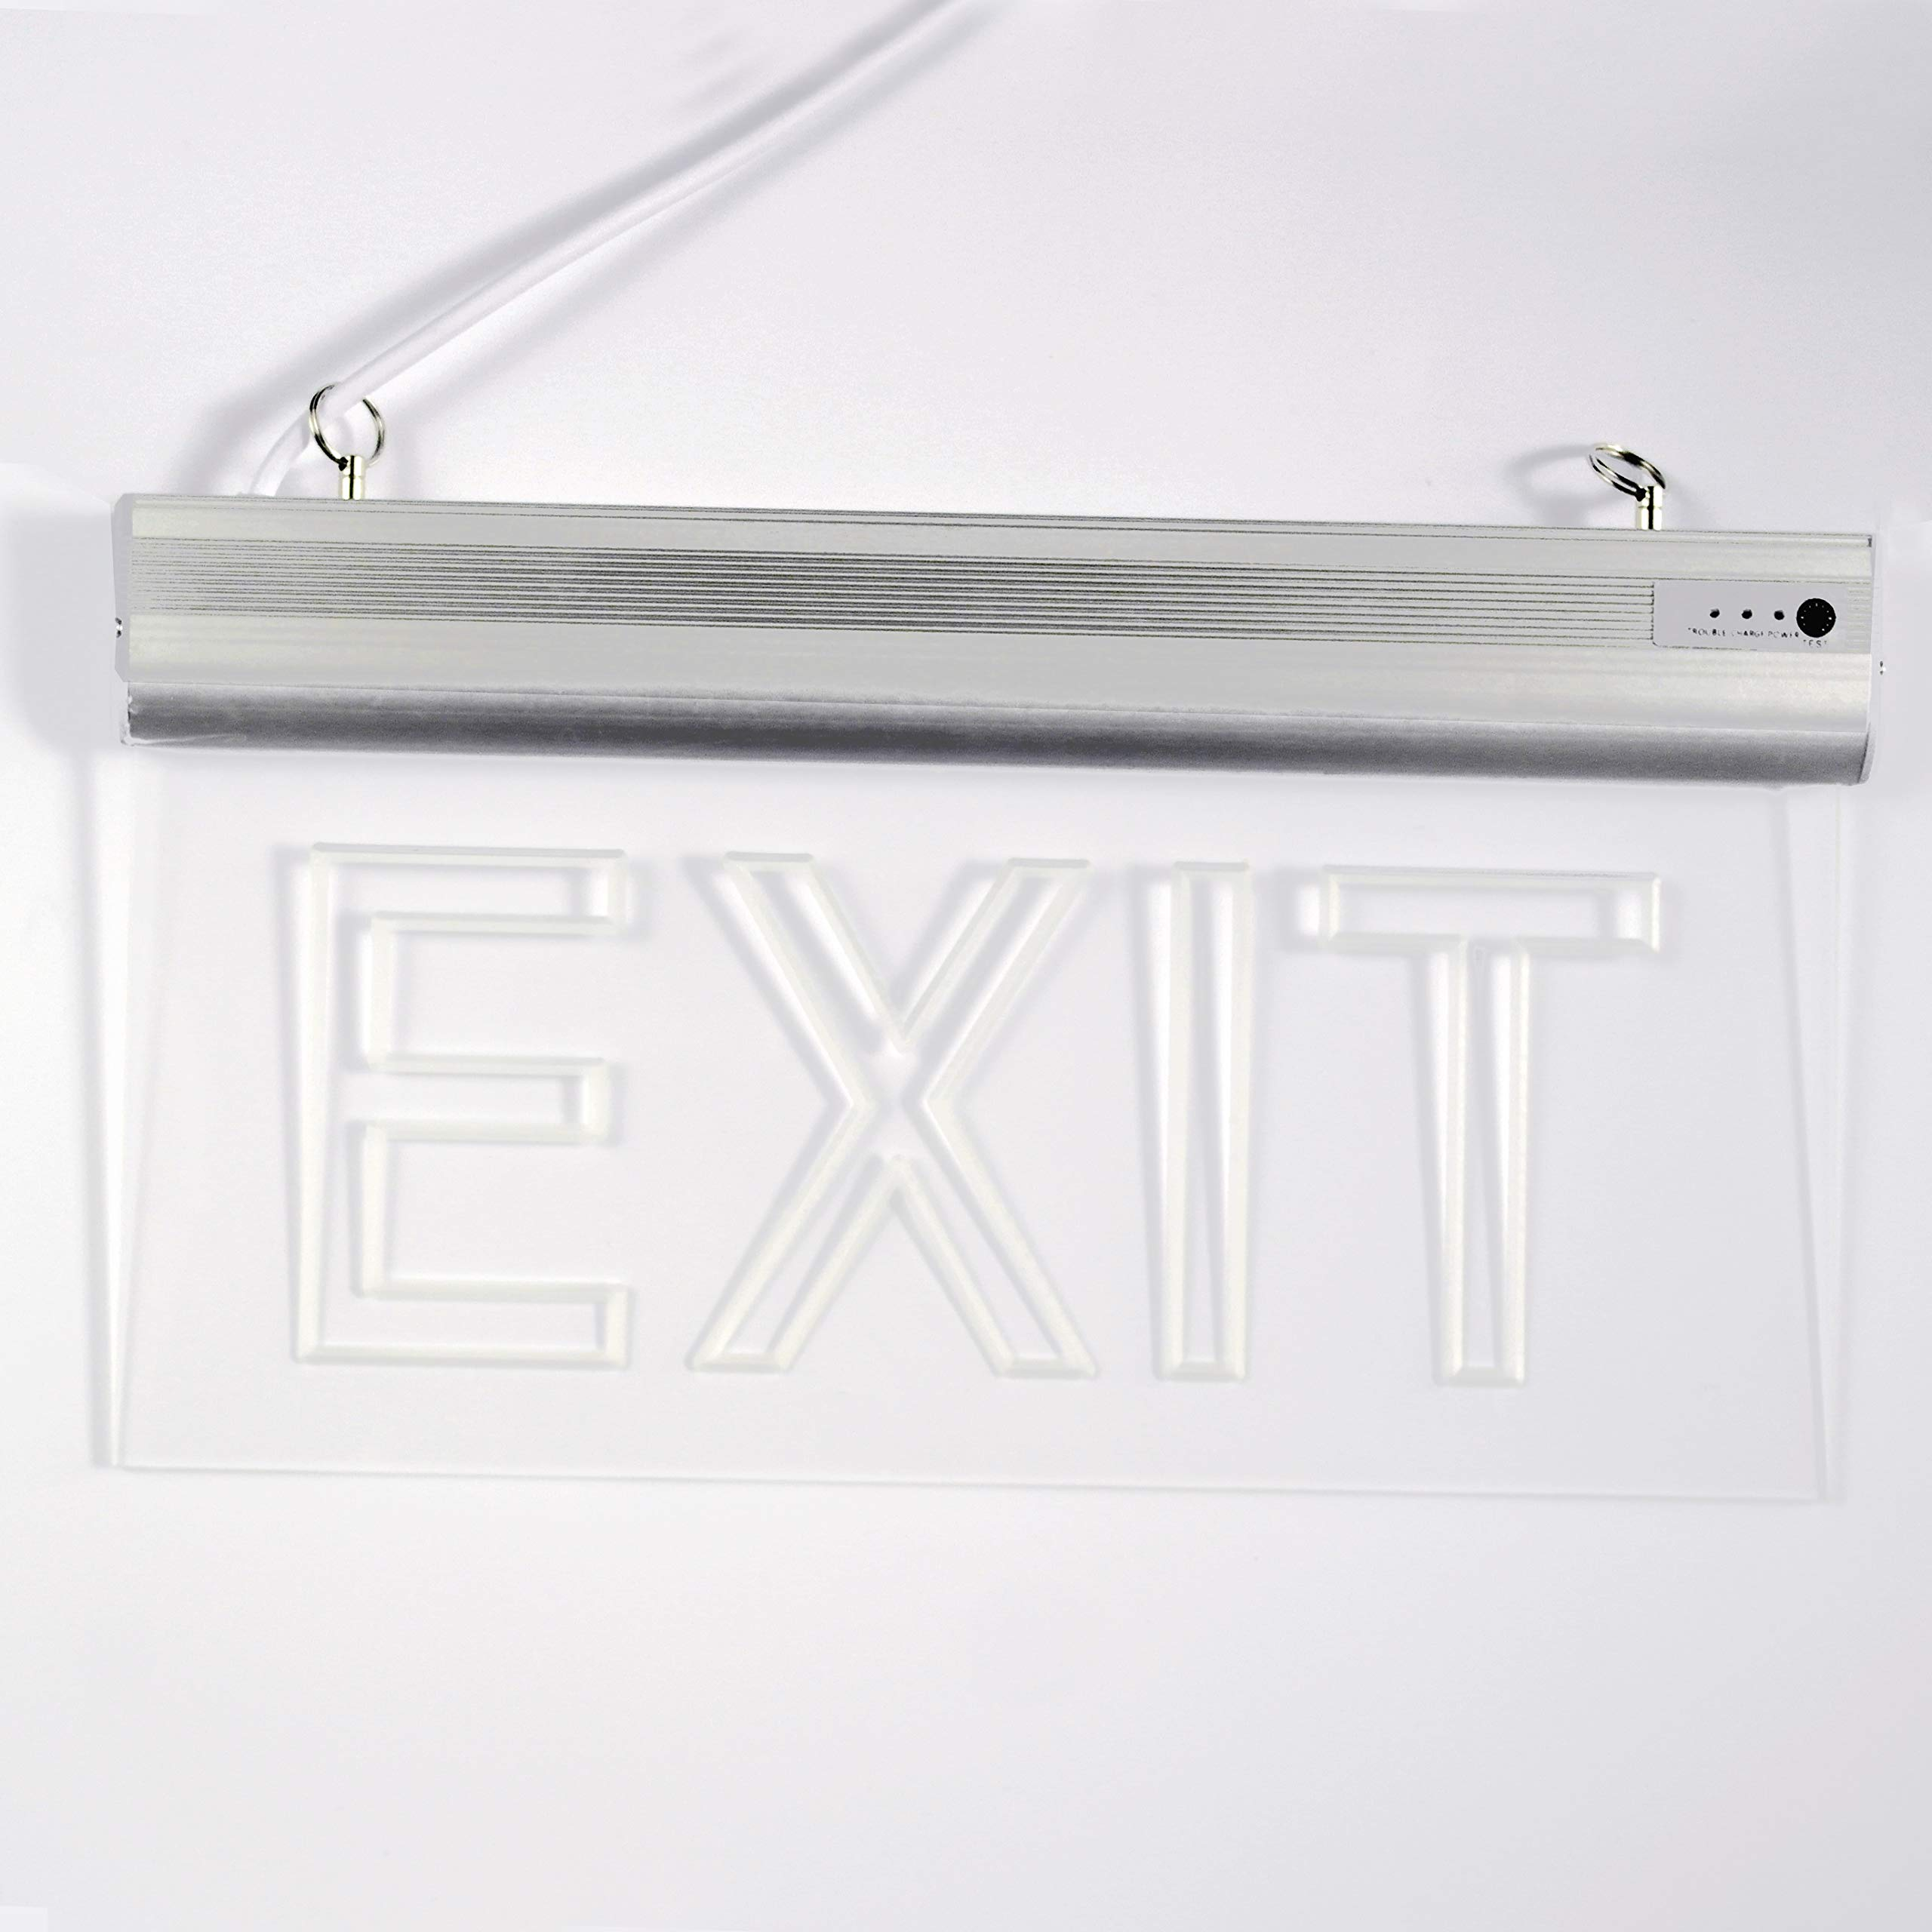 LFI Lights - 2 Pack - Certified - Hardwired Red LED Edge Light Exit Sign - Rotating Panel Battery Backup,Clear Panel(Green) by ryumei (Image #5)